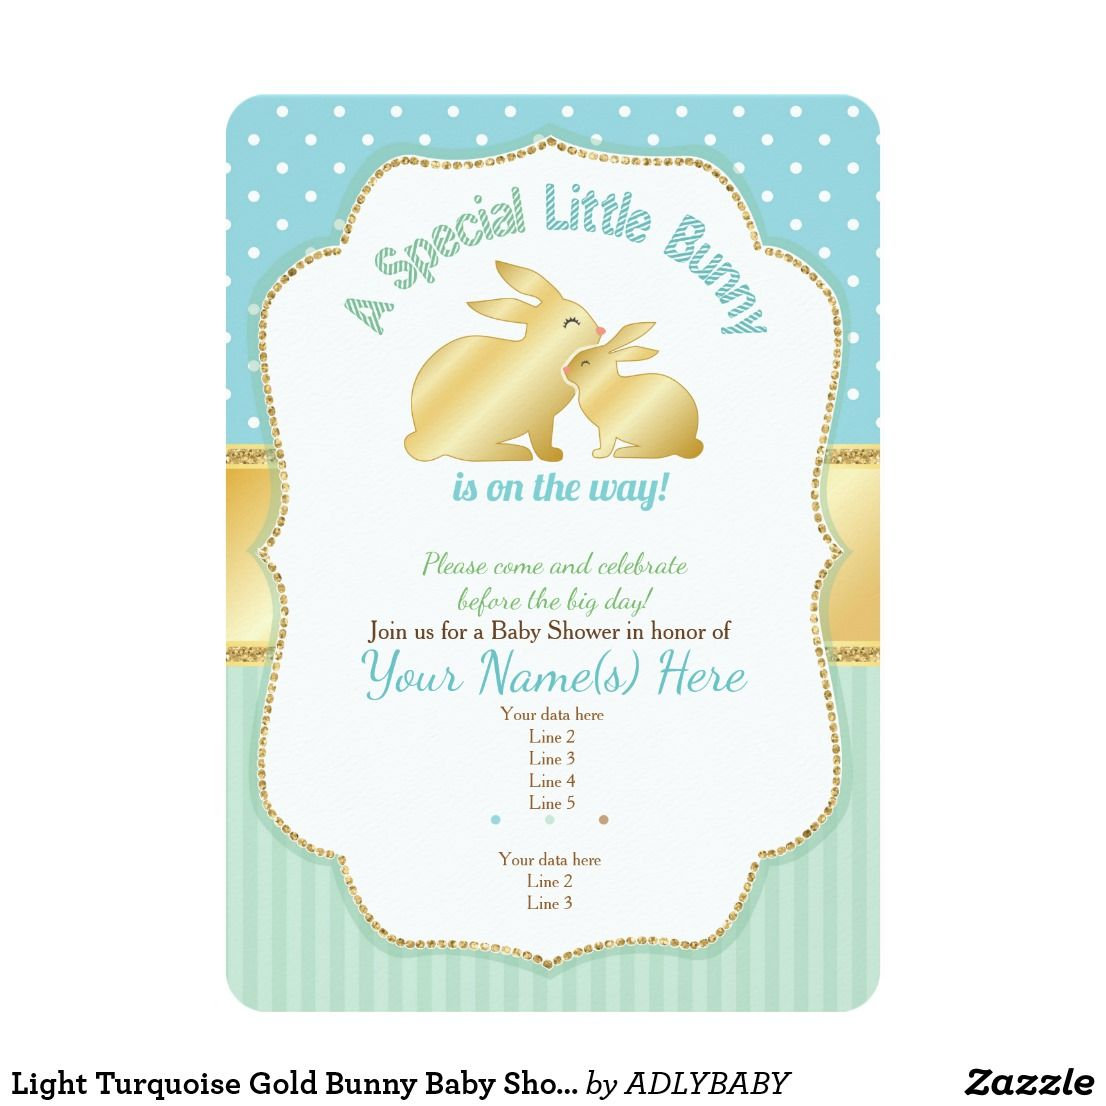 Light Turquoise Gold Bunny Baby Shower Invitation Baby Shower Light  Turquoise Gold Bunny Baby Shower Invitation